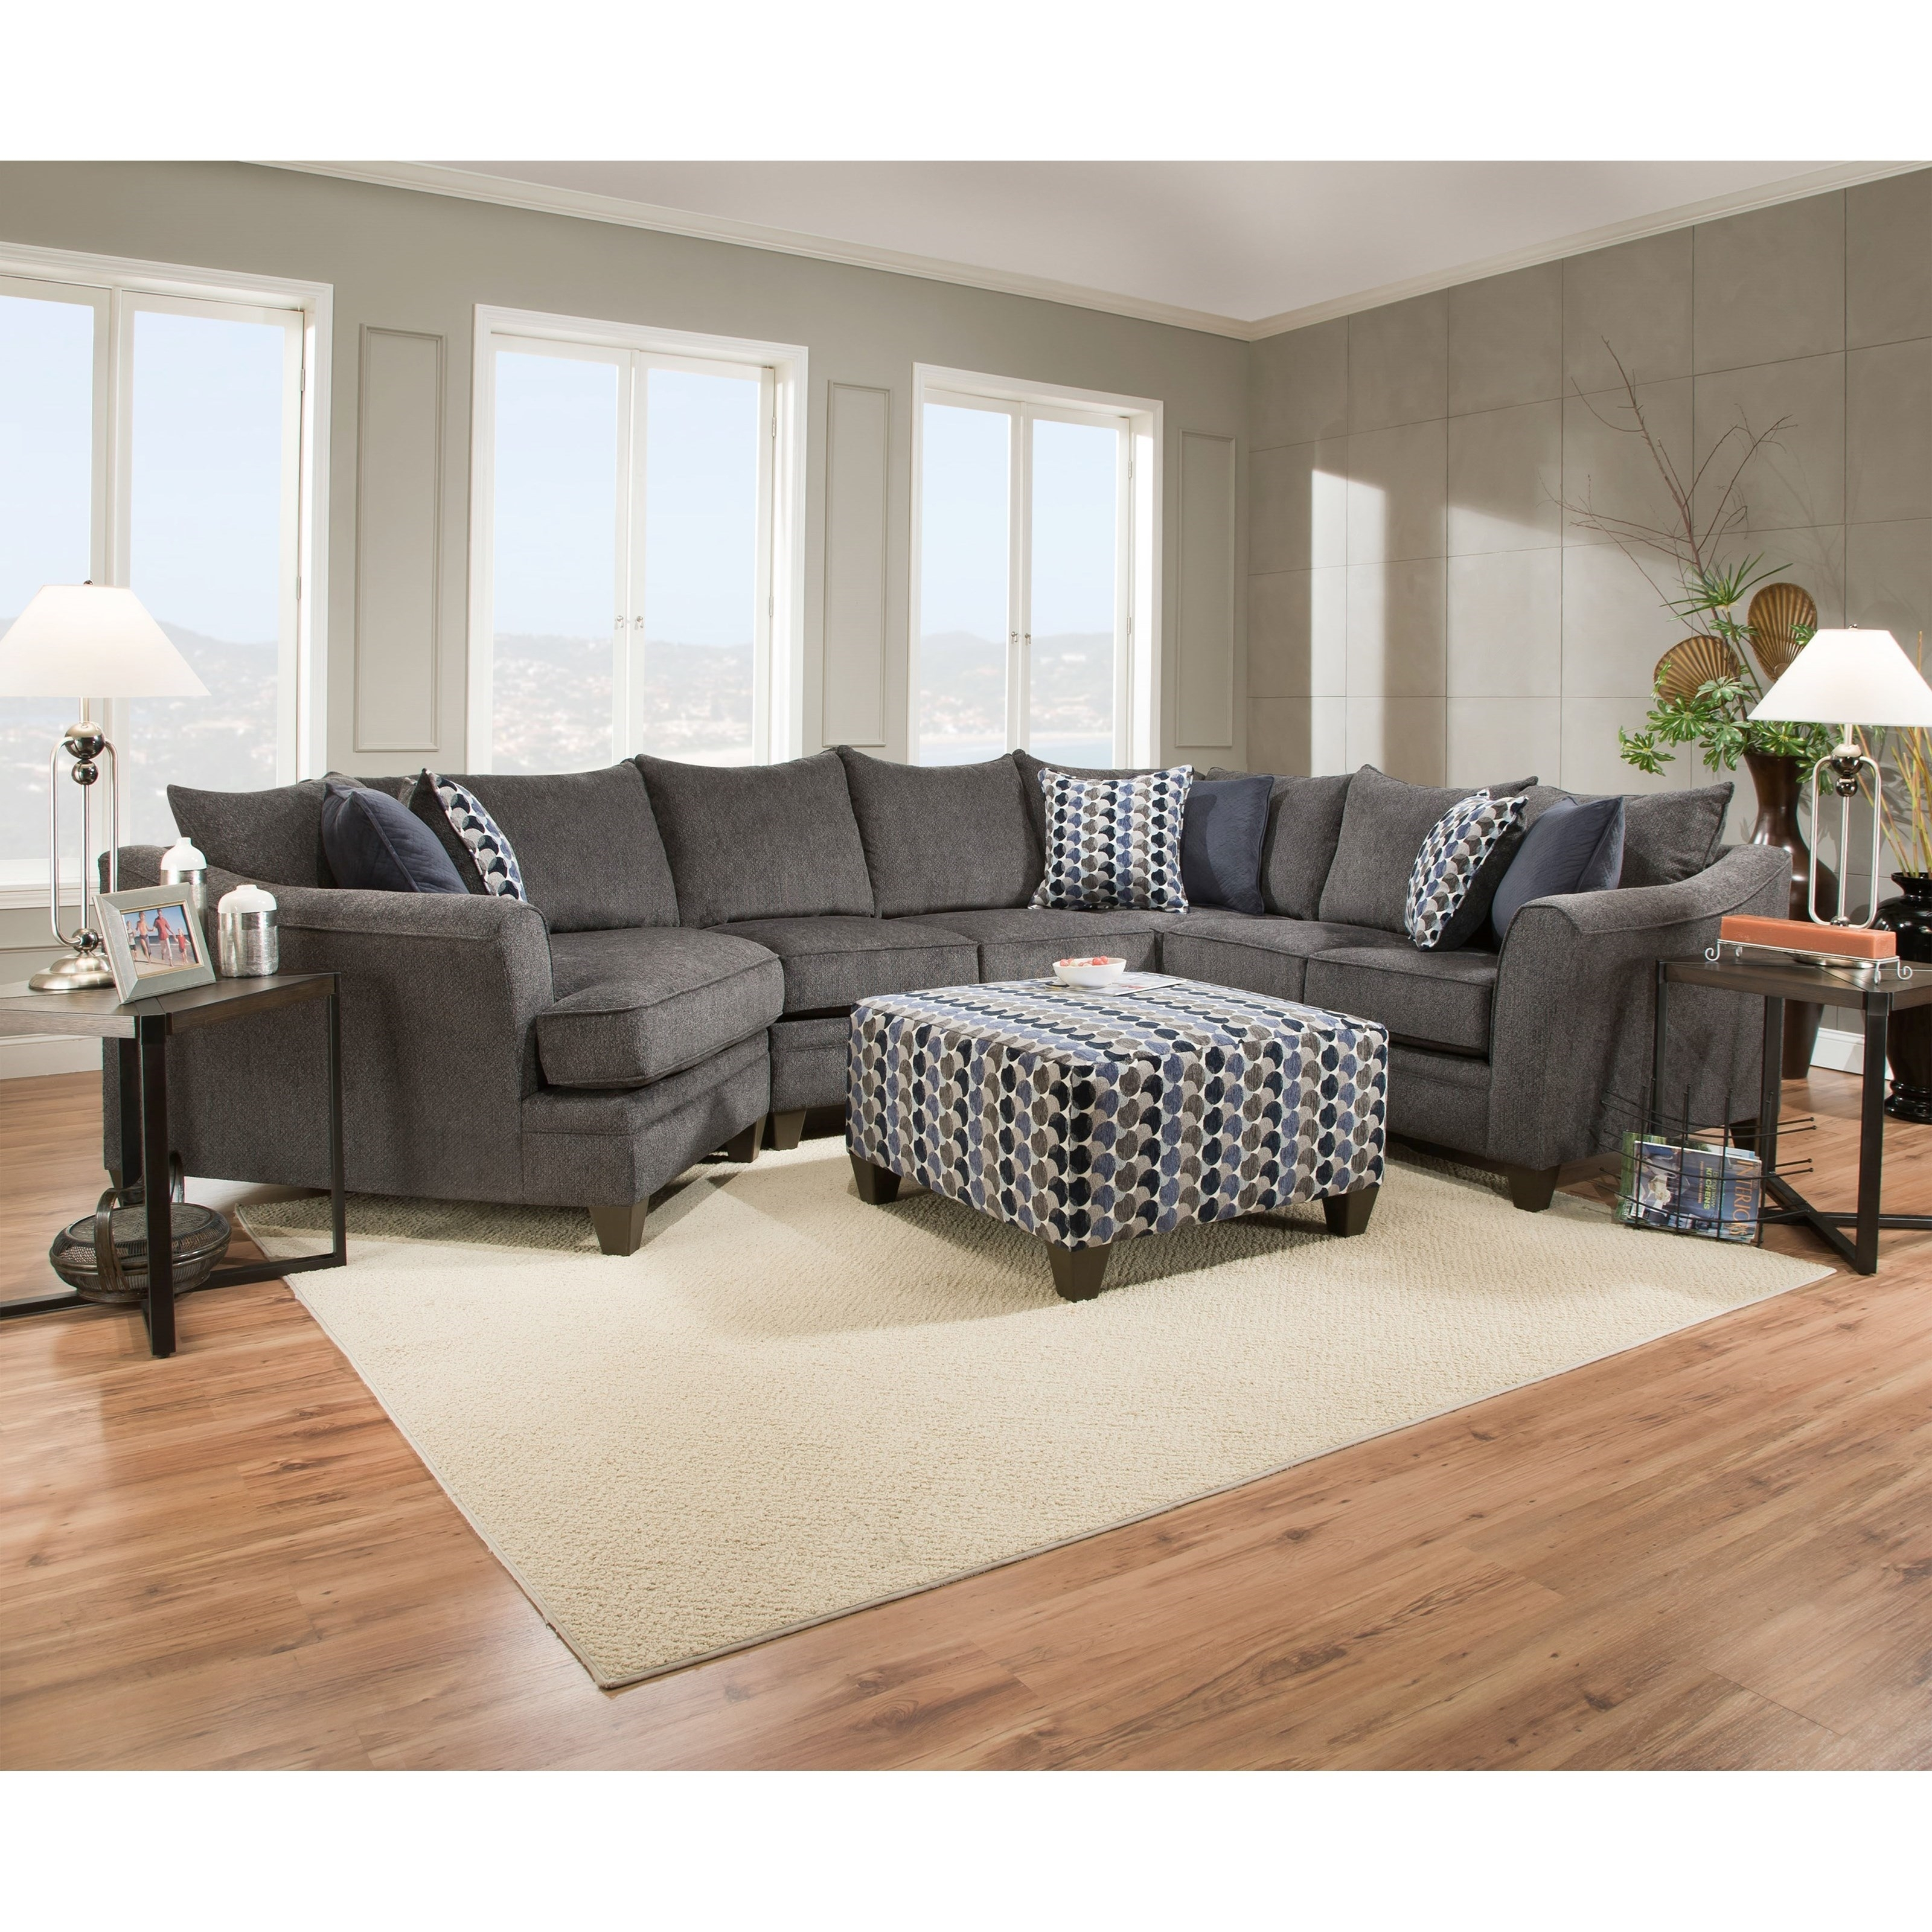 United Furniture Industries 6485 Albany Slate Transitional Sectional in Wilmington Nc Sectional Sofas